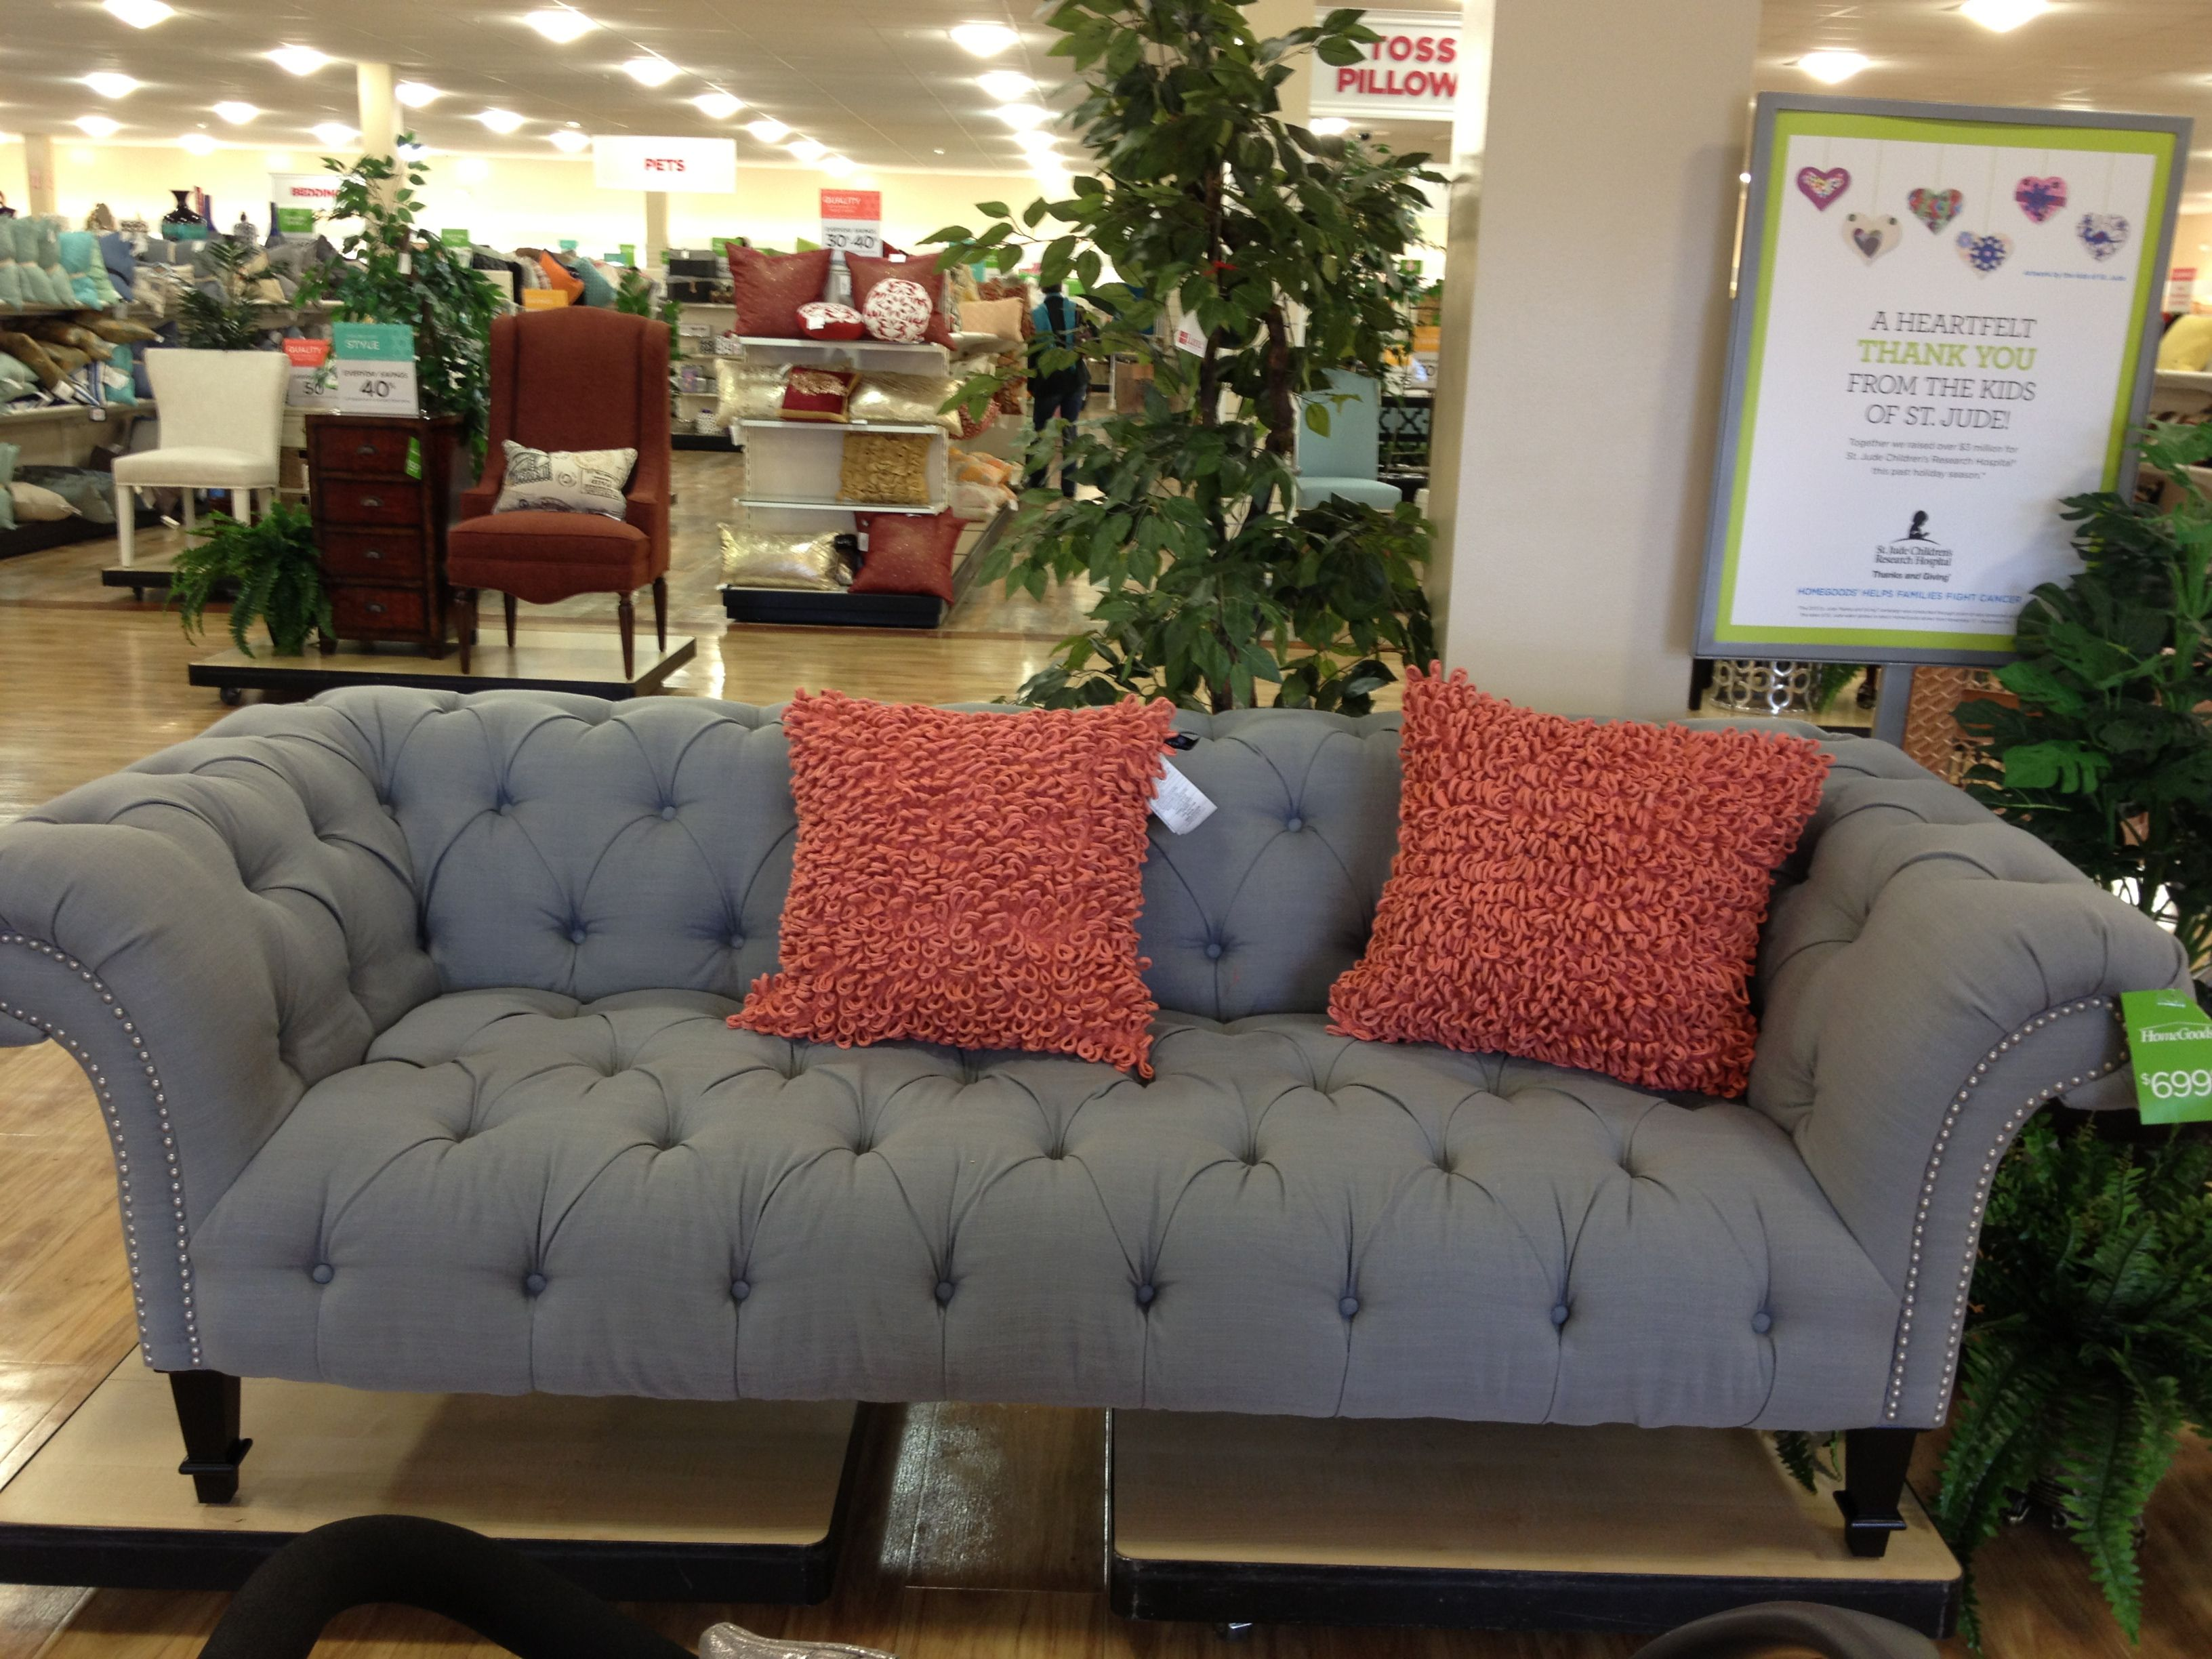 Tufted couch $699 home goods Shopping Notes